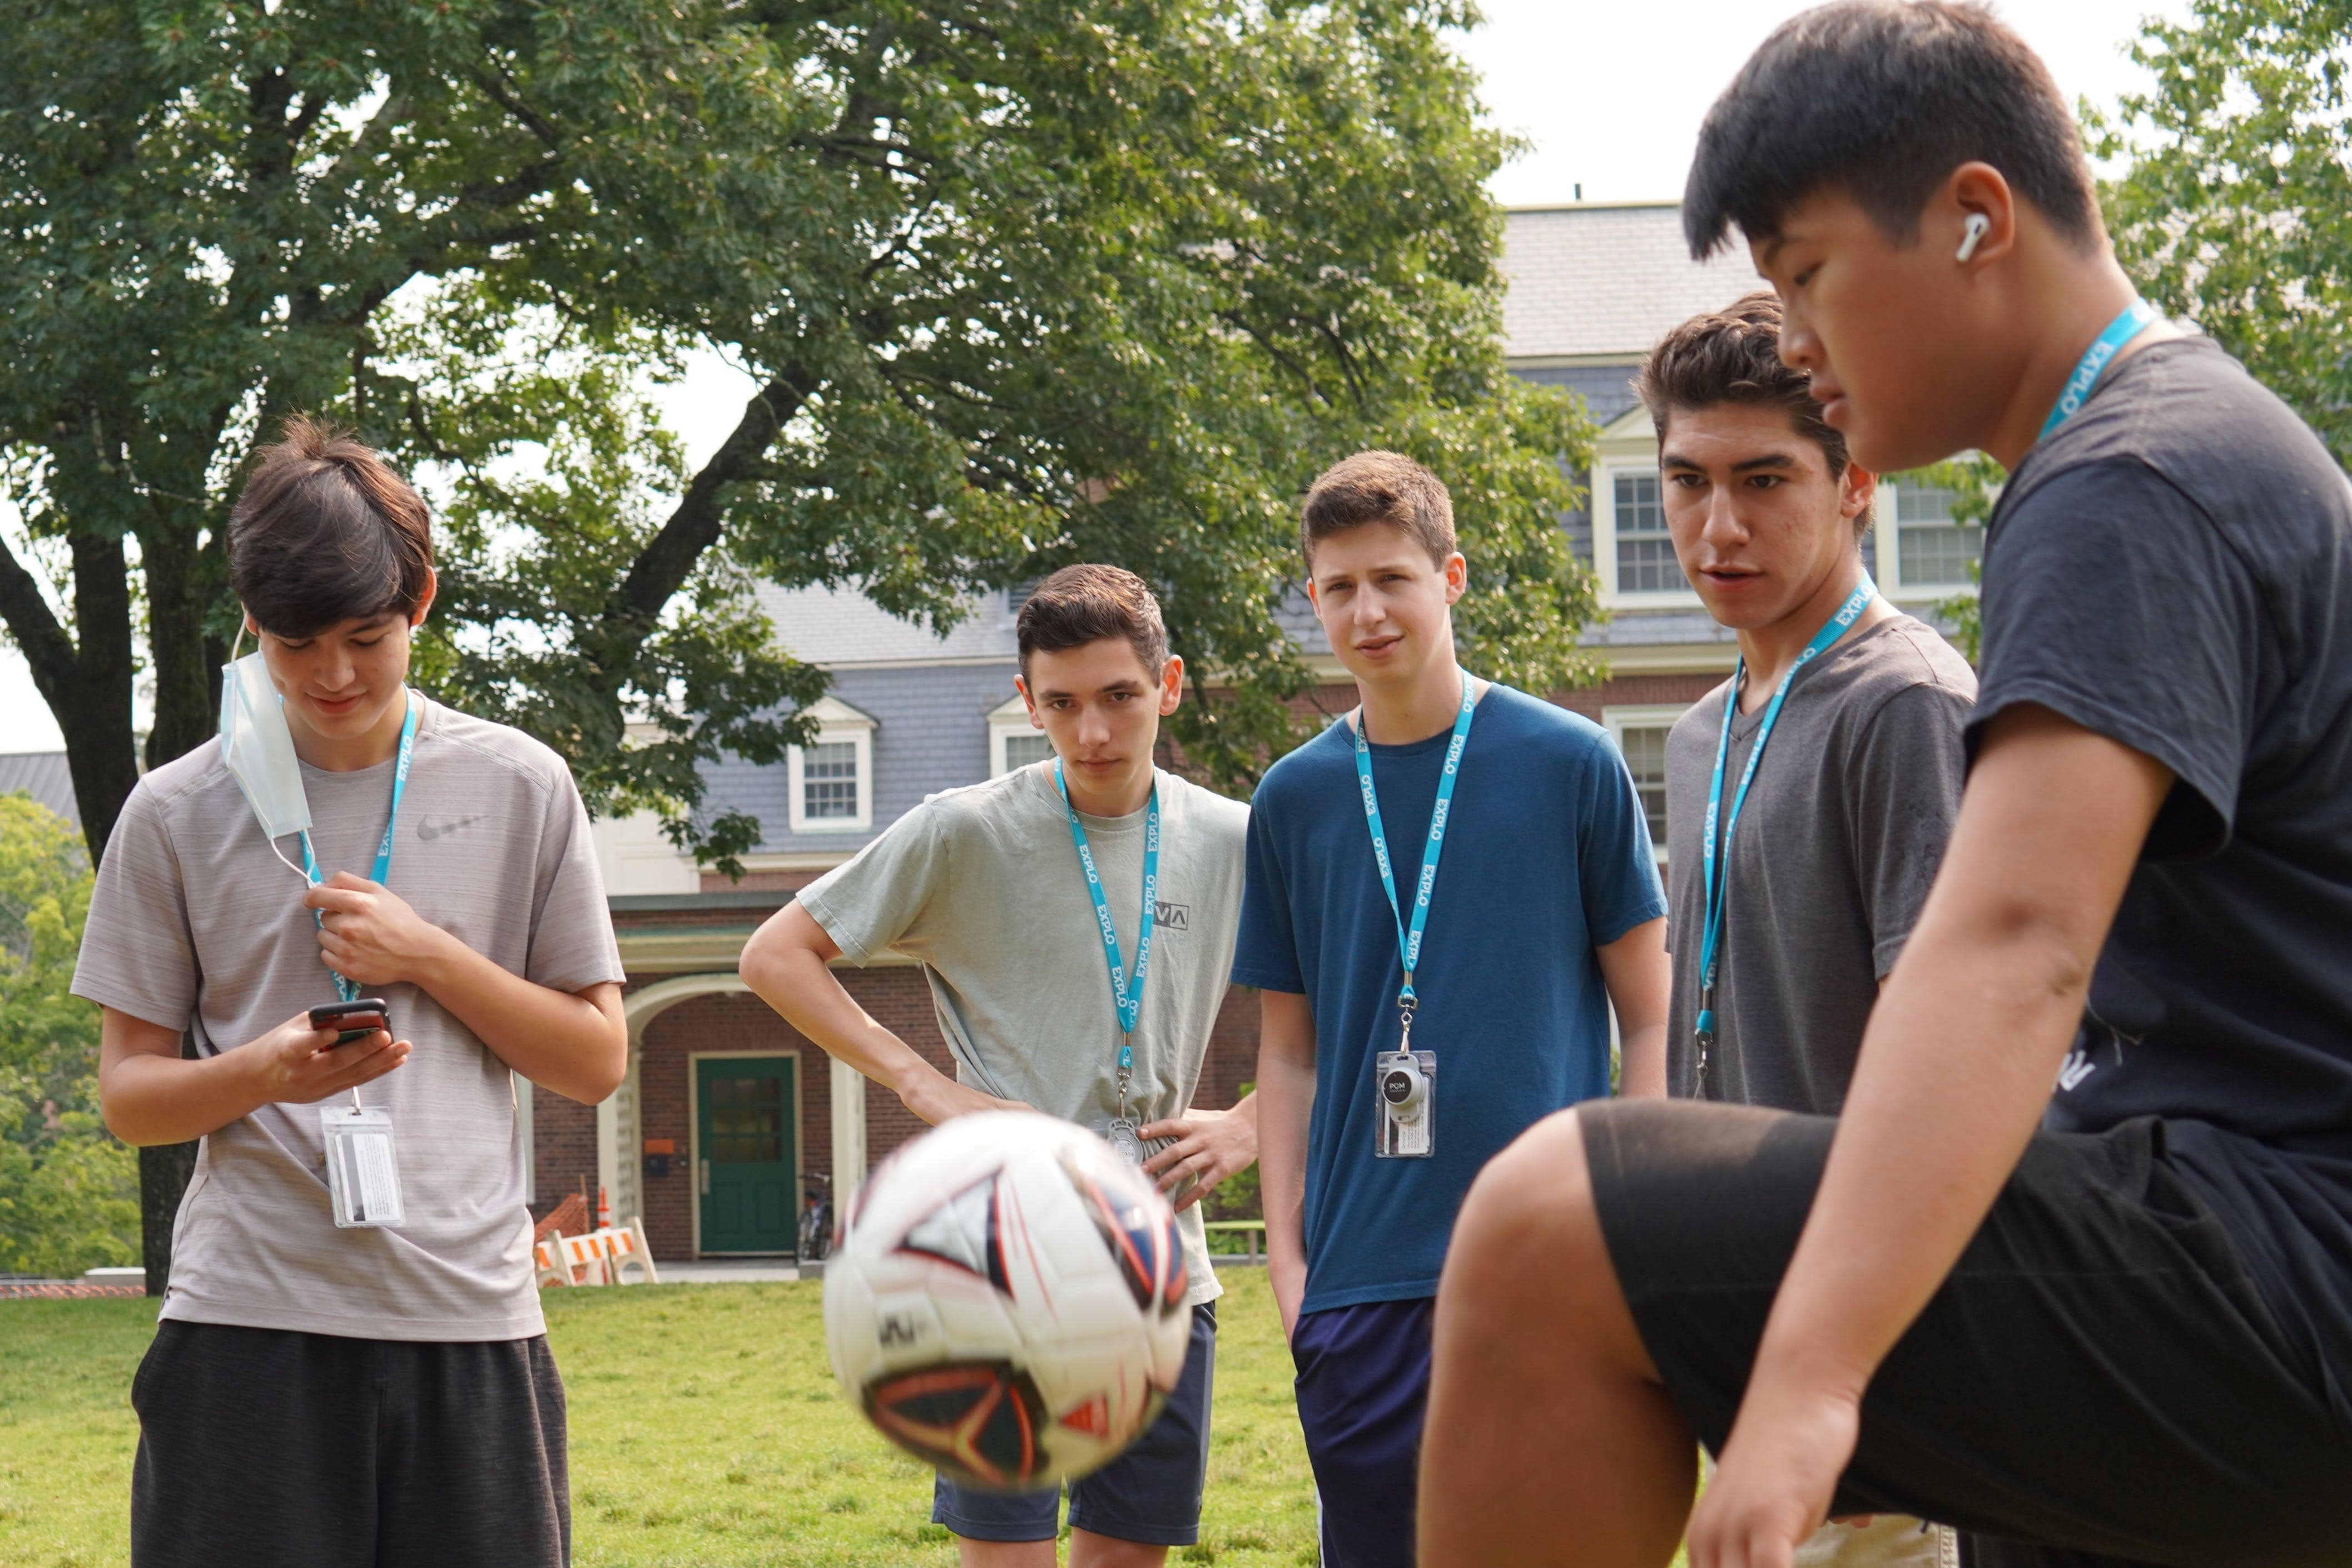 Students gather in a circle to kick a soccer ball between them as they wait for the community meeting to start on the quad.